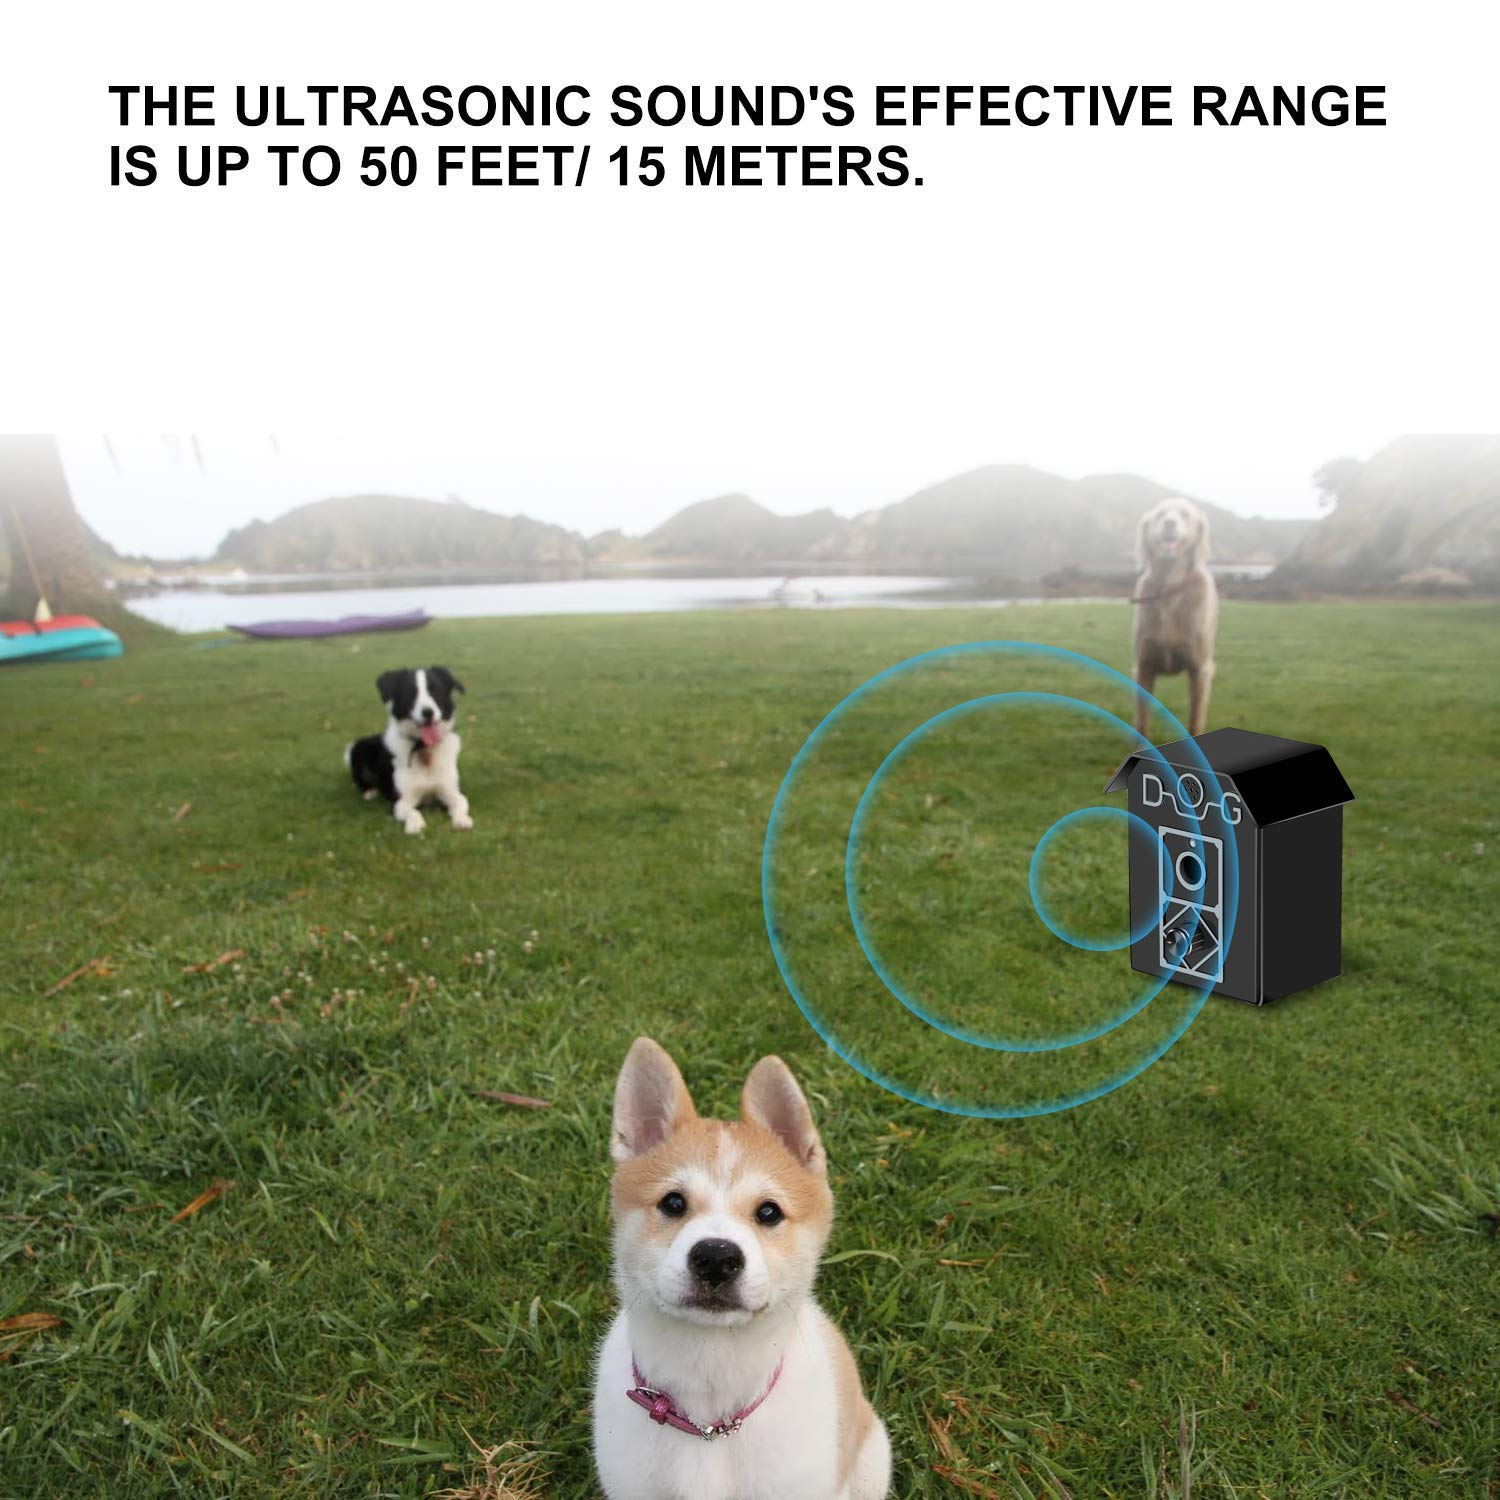 Dog Bark Control 50 FT Range Stop Barking Device, Ultrasonic Anti-Bark Device, Safe for All Dogs, Indoor & Outdoor Use, Dog Training Tool and Sonic Bark Deterrents Device Let Stop Barking Dogs by ULTPEAK